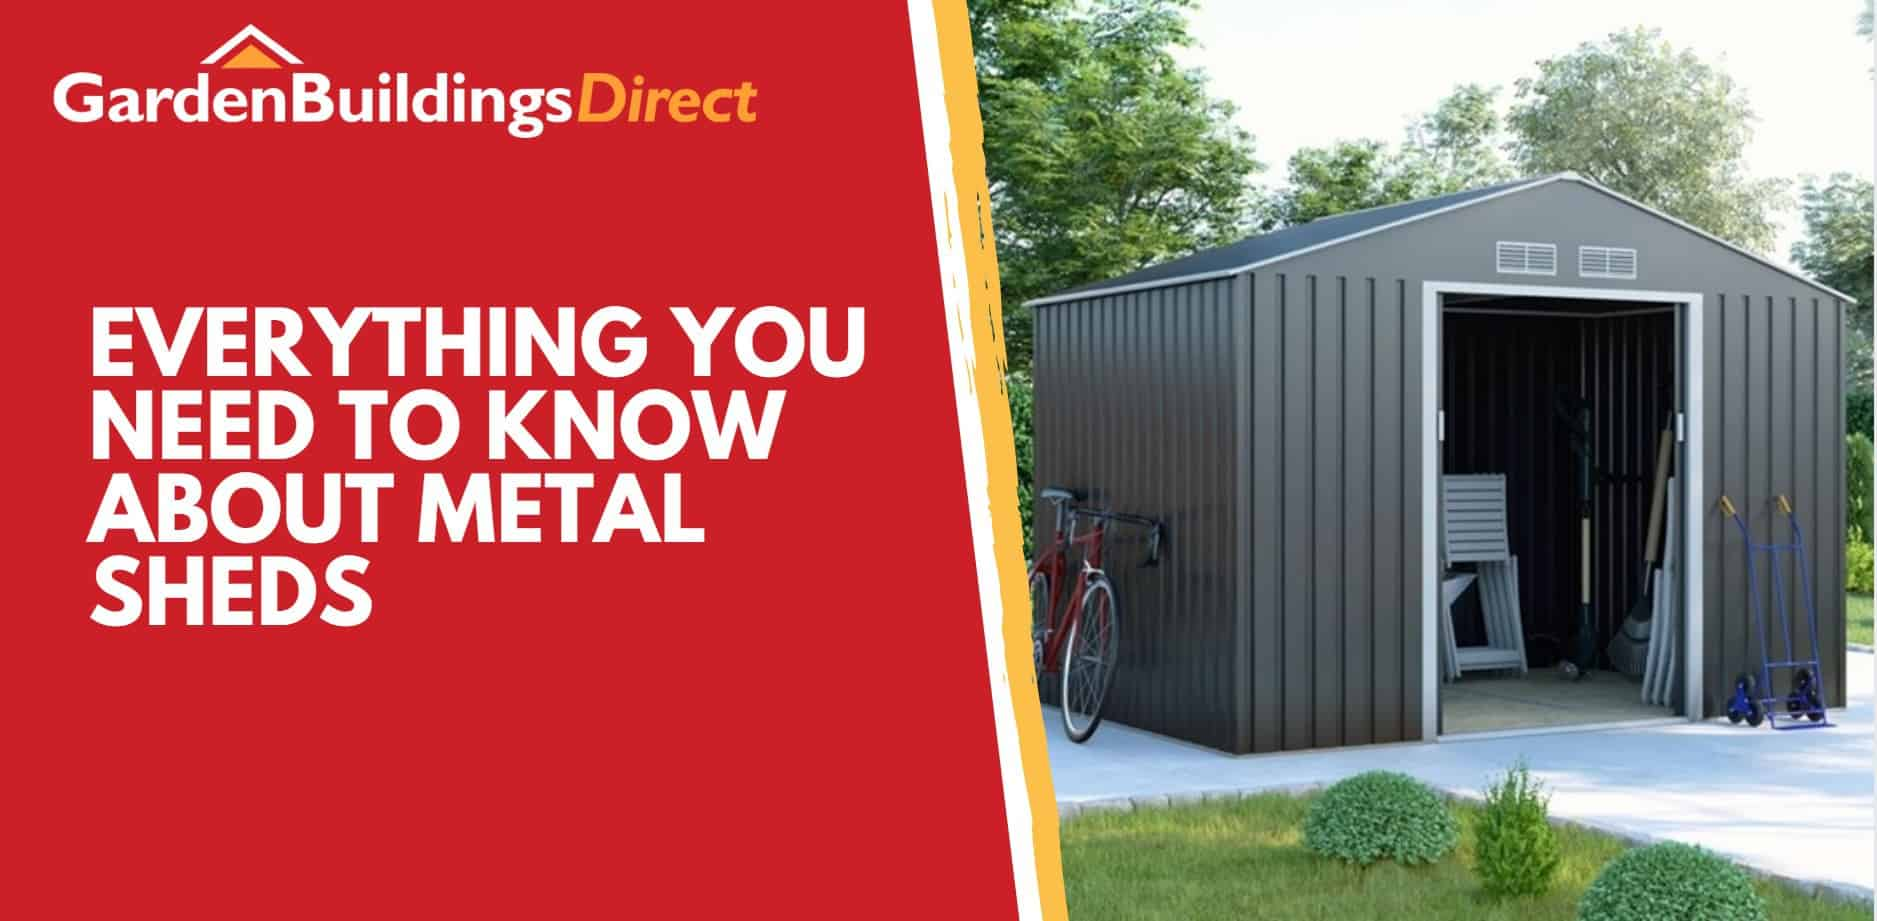 Everything you need to know about metal sheds banner